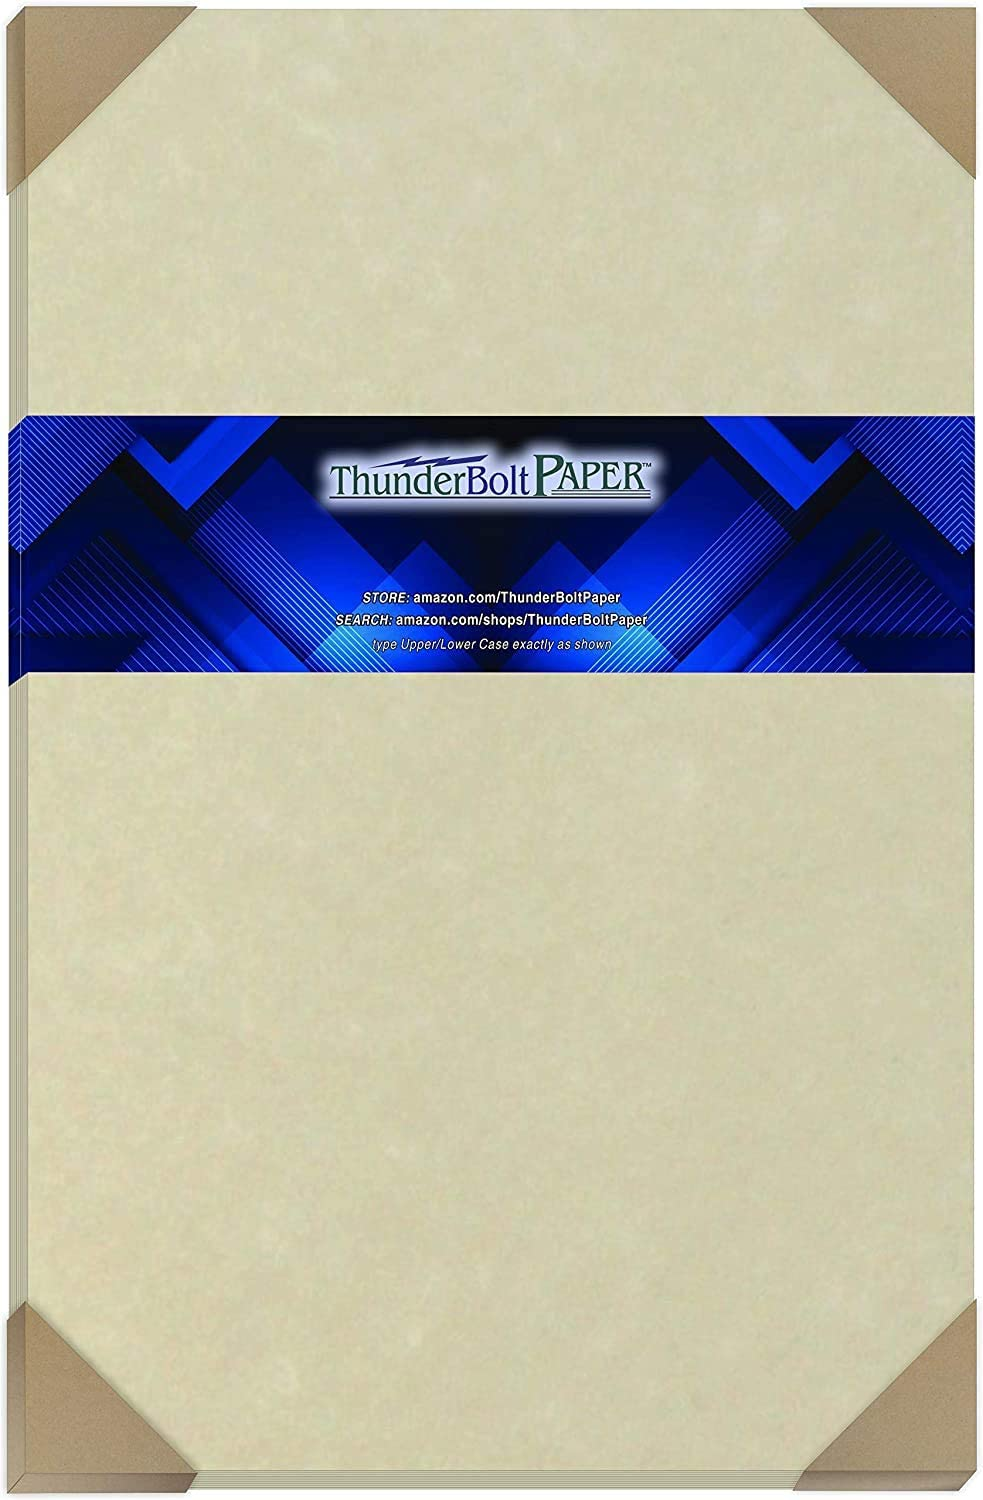 25 Natural Parchment 65lb Cover Paper Sheets 12 X 18 Inches Cardstock Weight Colored Sheets 12